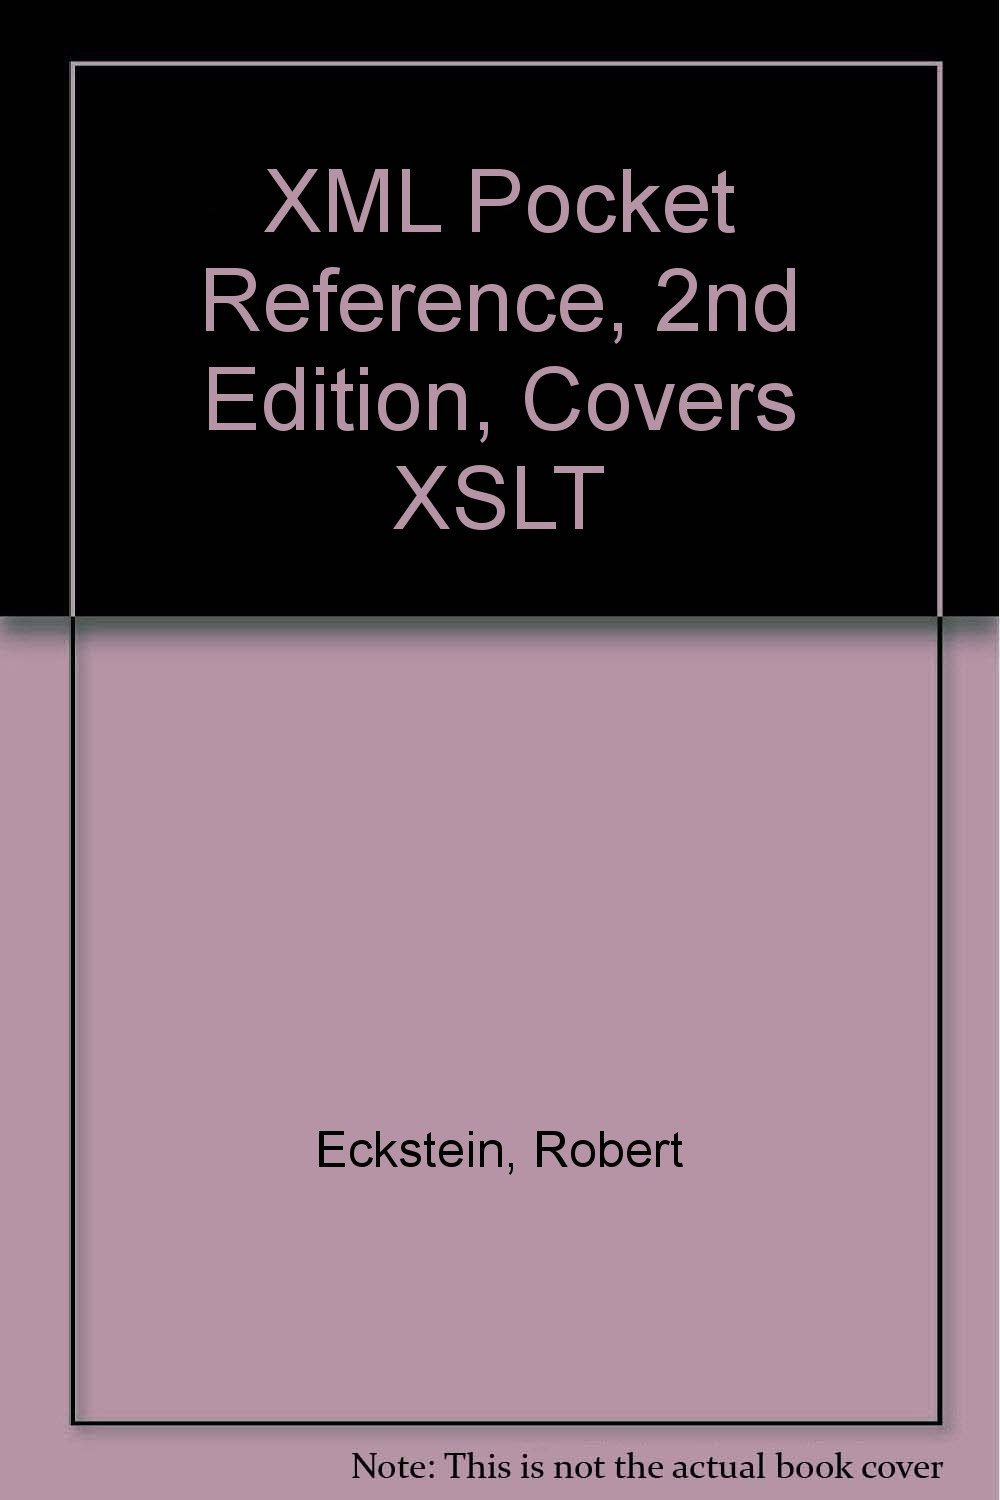 XML Pocket Reference, 2nd Edition, Covers XSLT: Robert Eckstein:  Amazon.com: Books